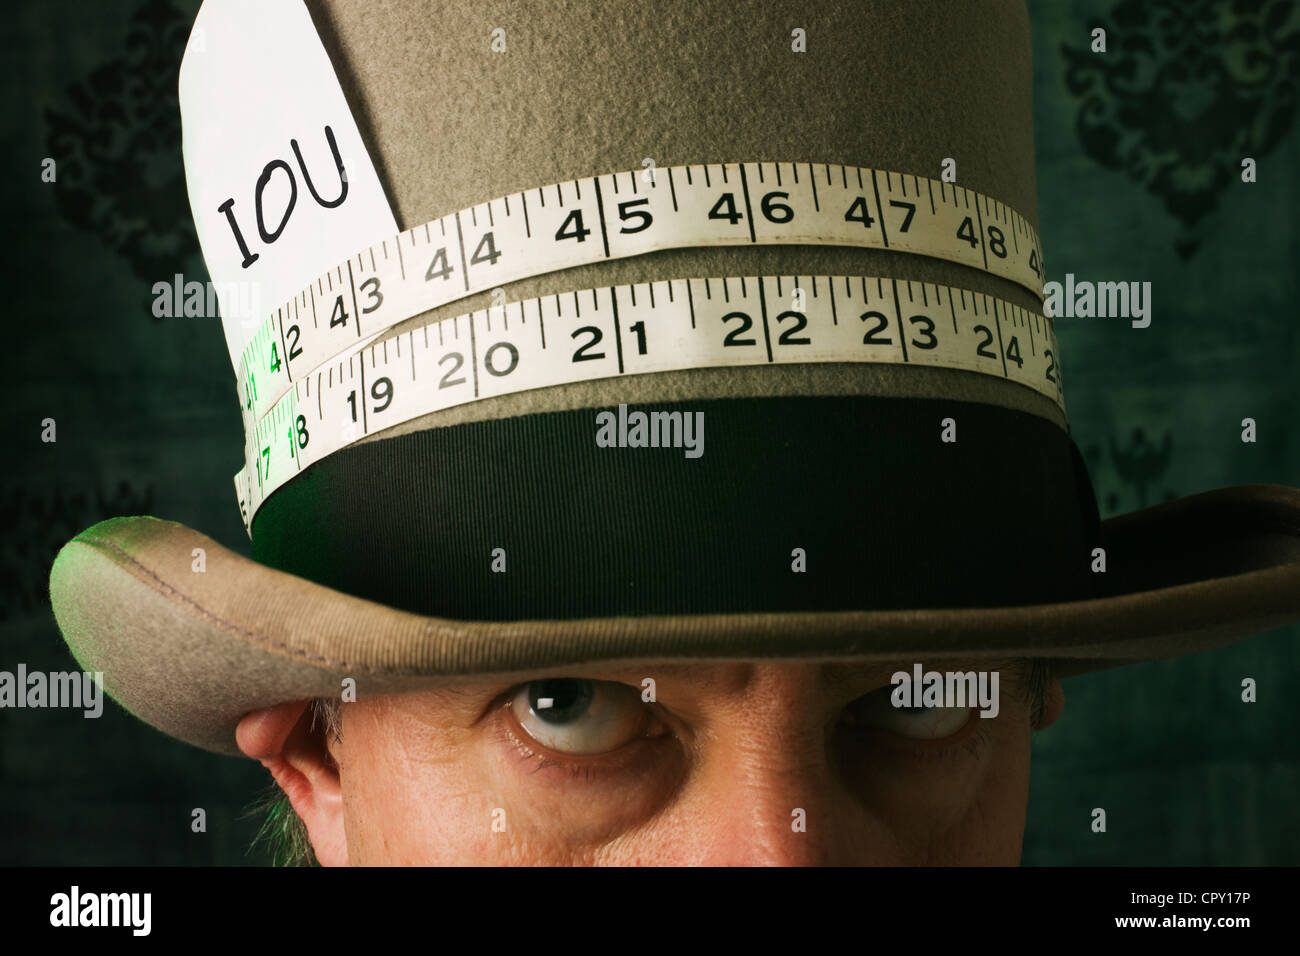 A mad hatter like man looking up at the IOU on his hat. - Stock Image